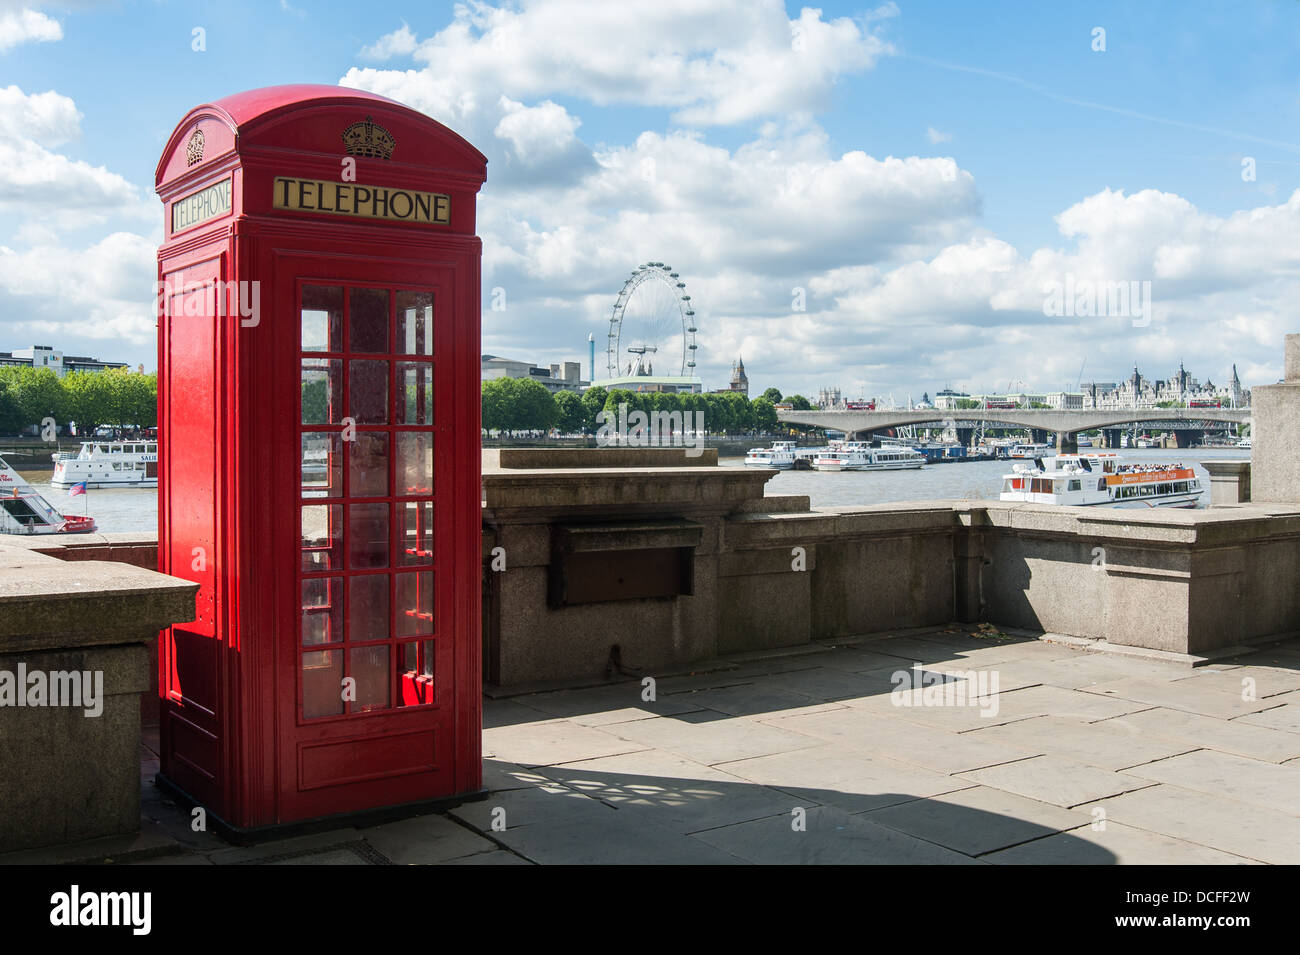 Red telephone box next to the river Thames, London, England - Stock Image